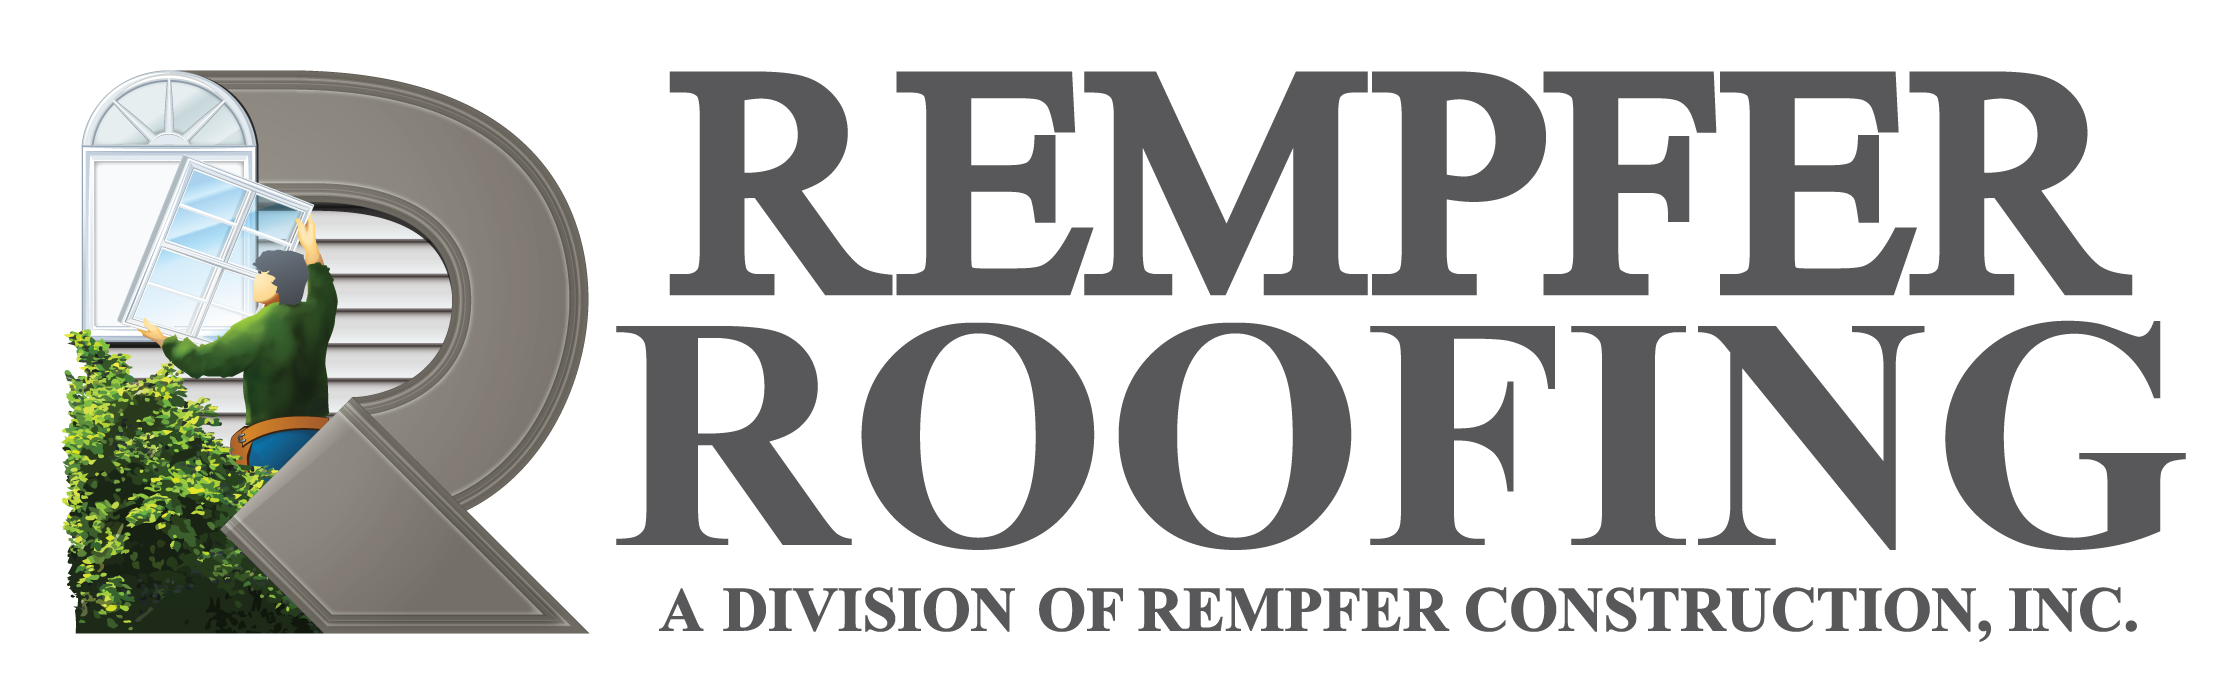 Rempfer Roofing - Lynchburg Roofing Company